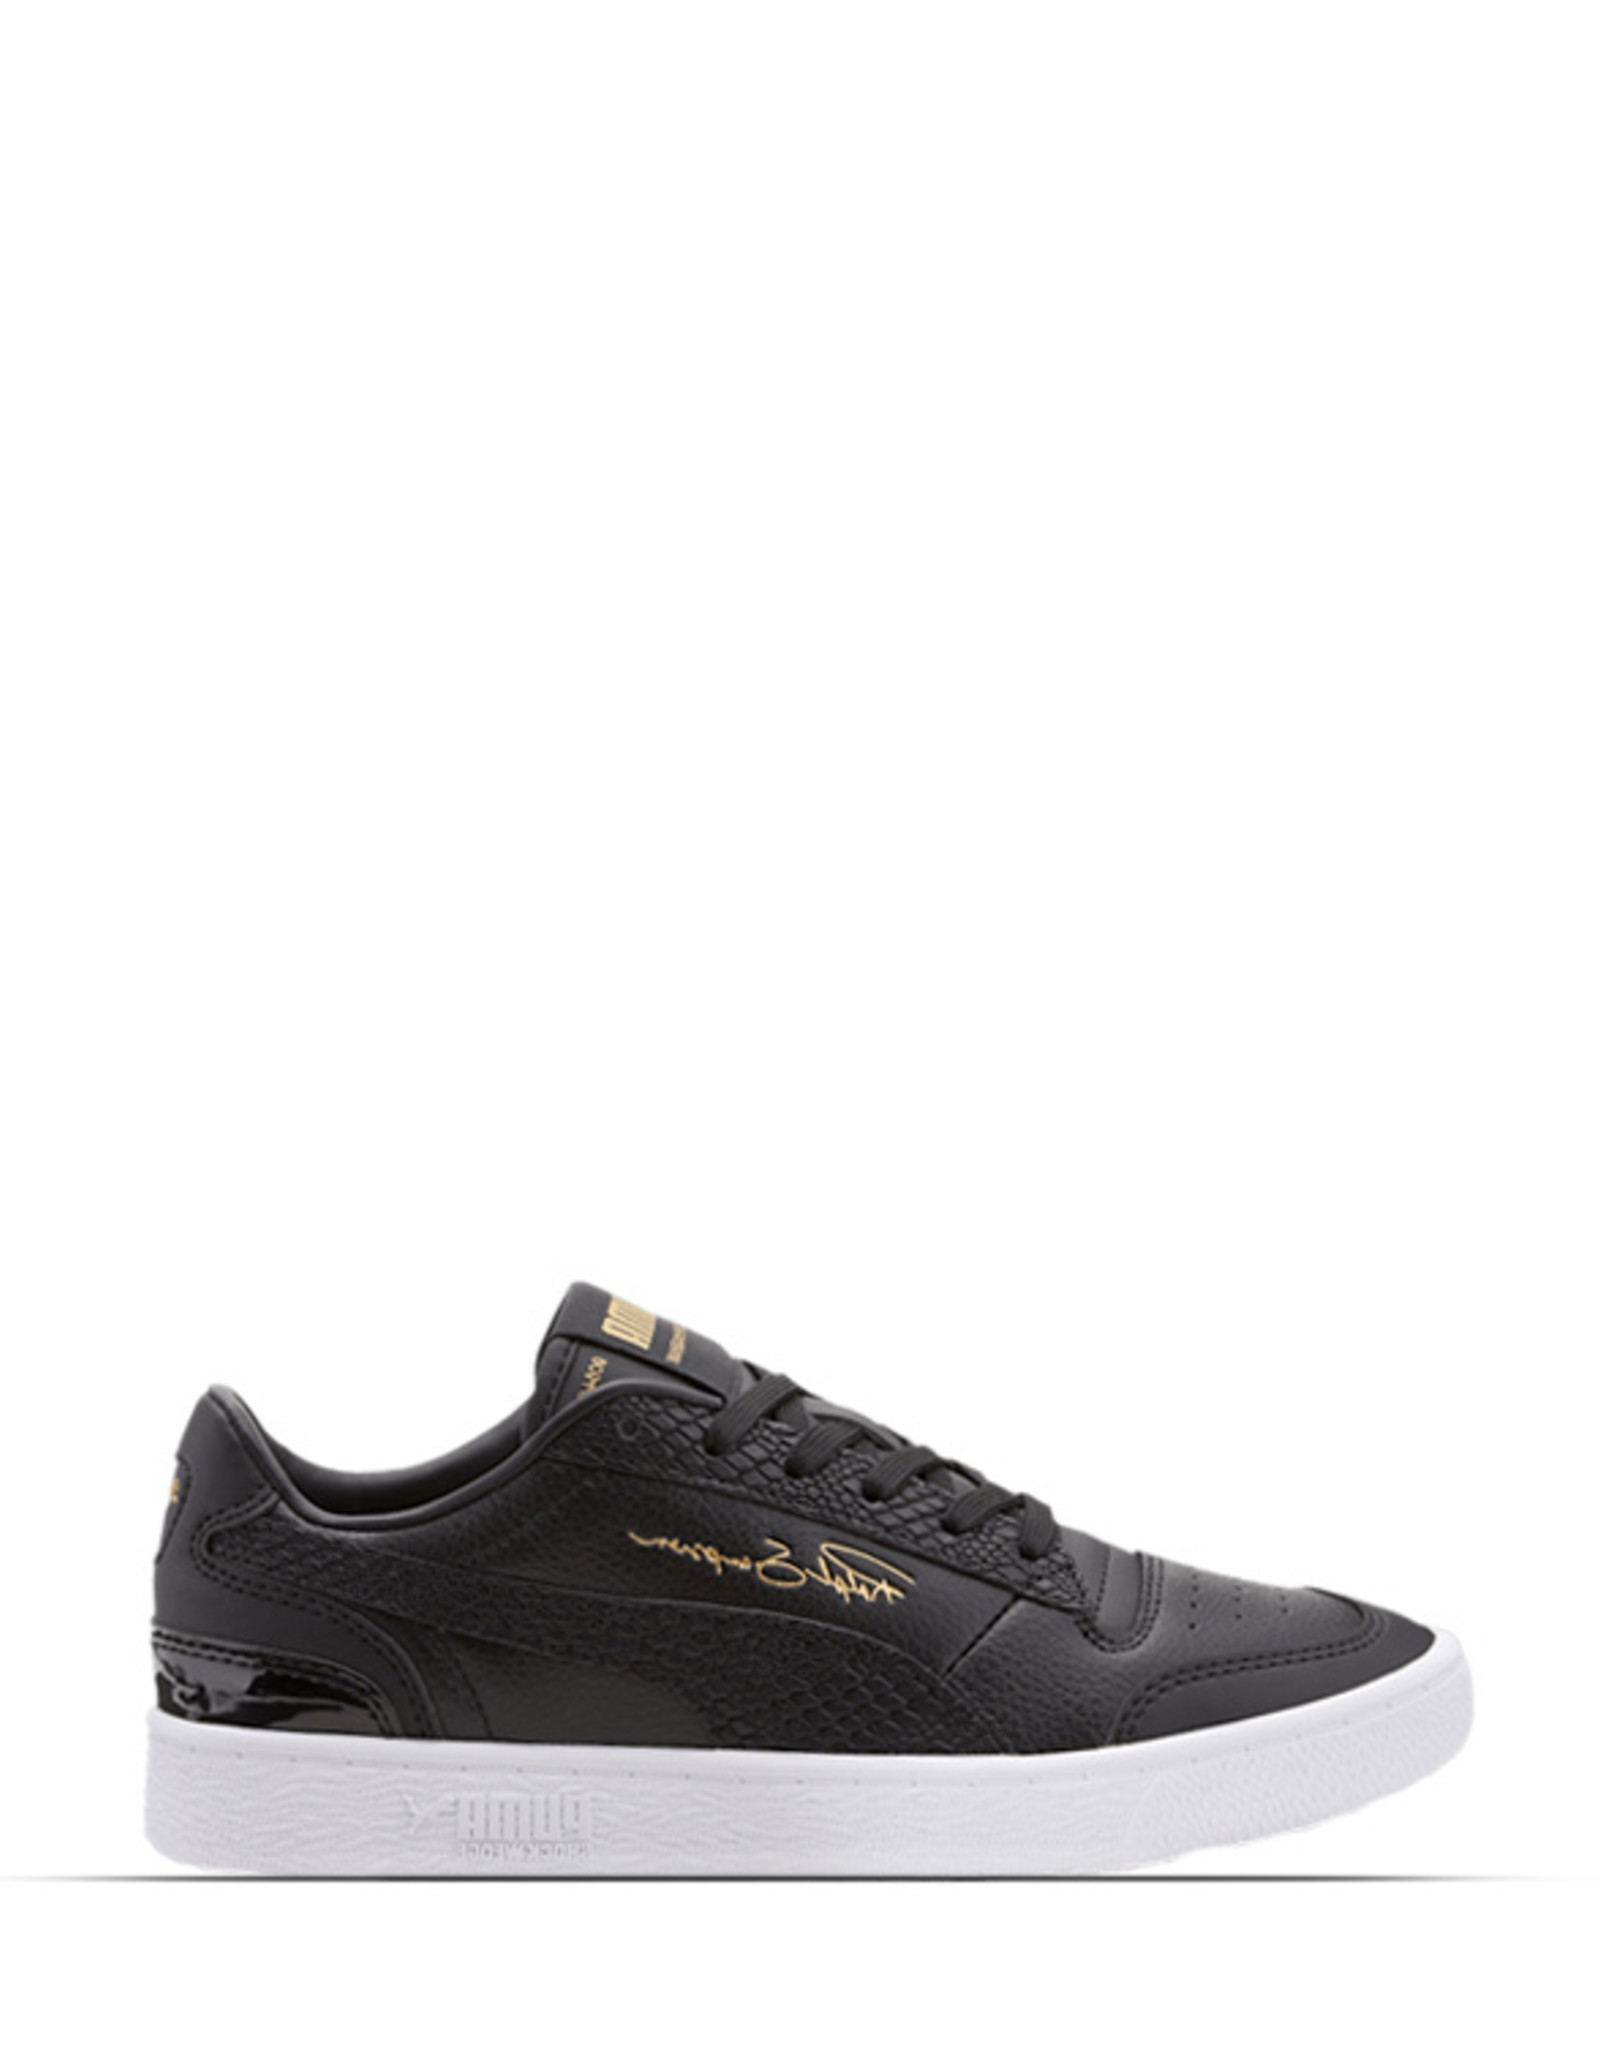 PUMA RALPH SAMPSON LO SNAKE - BLACK